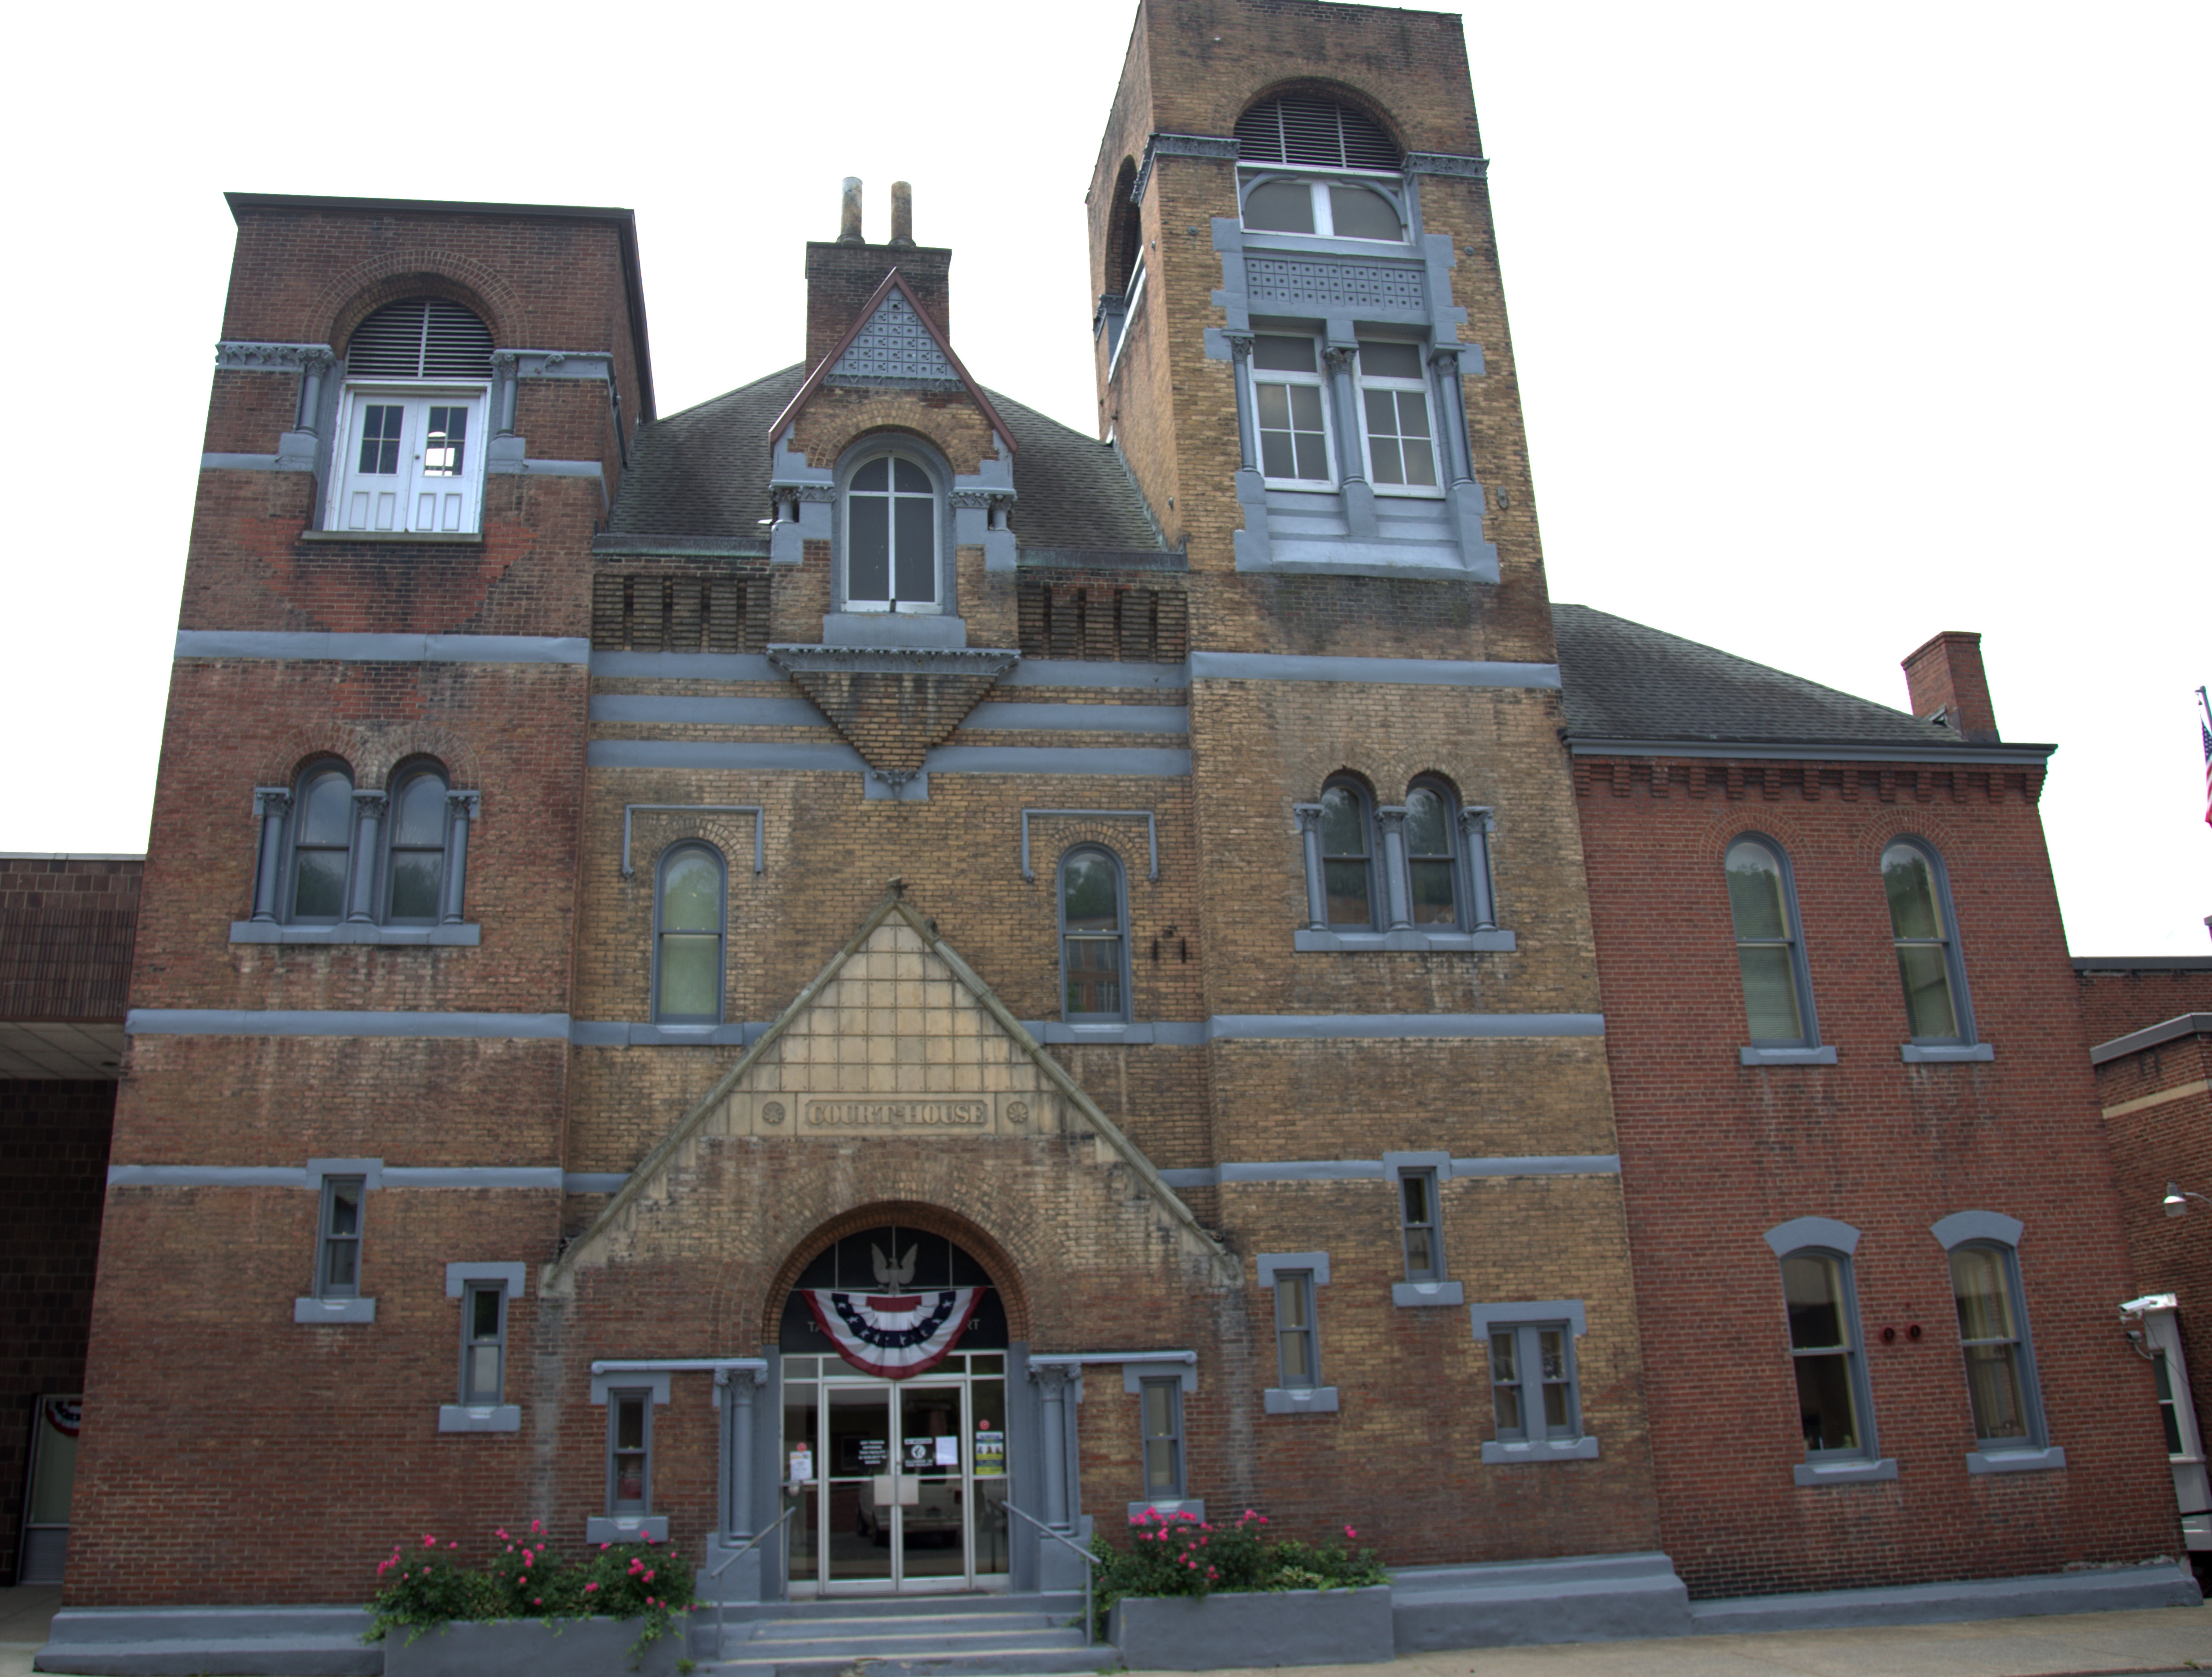 Taylor County Court-House, Grafton, West Virginia